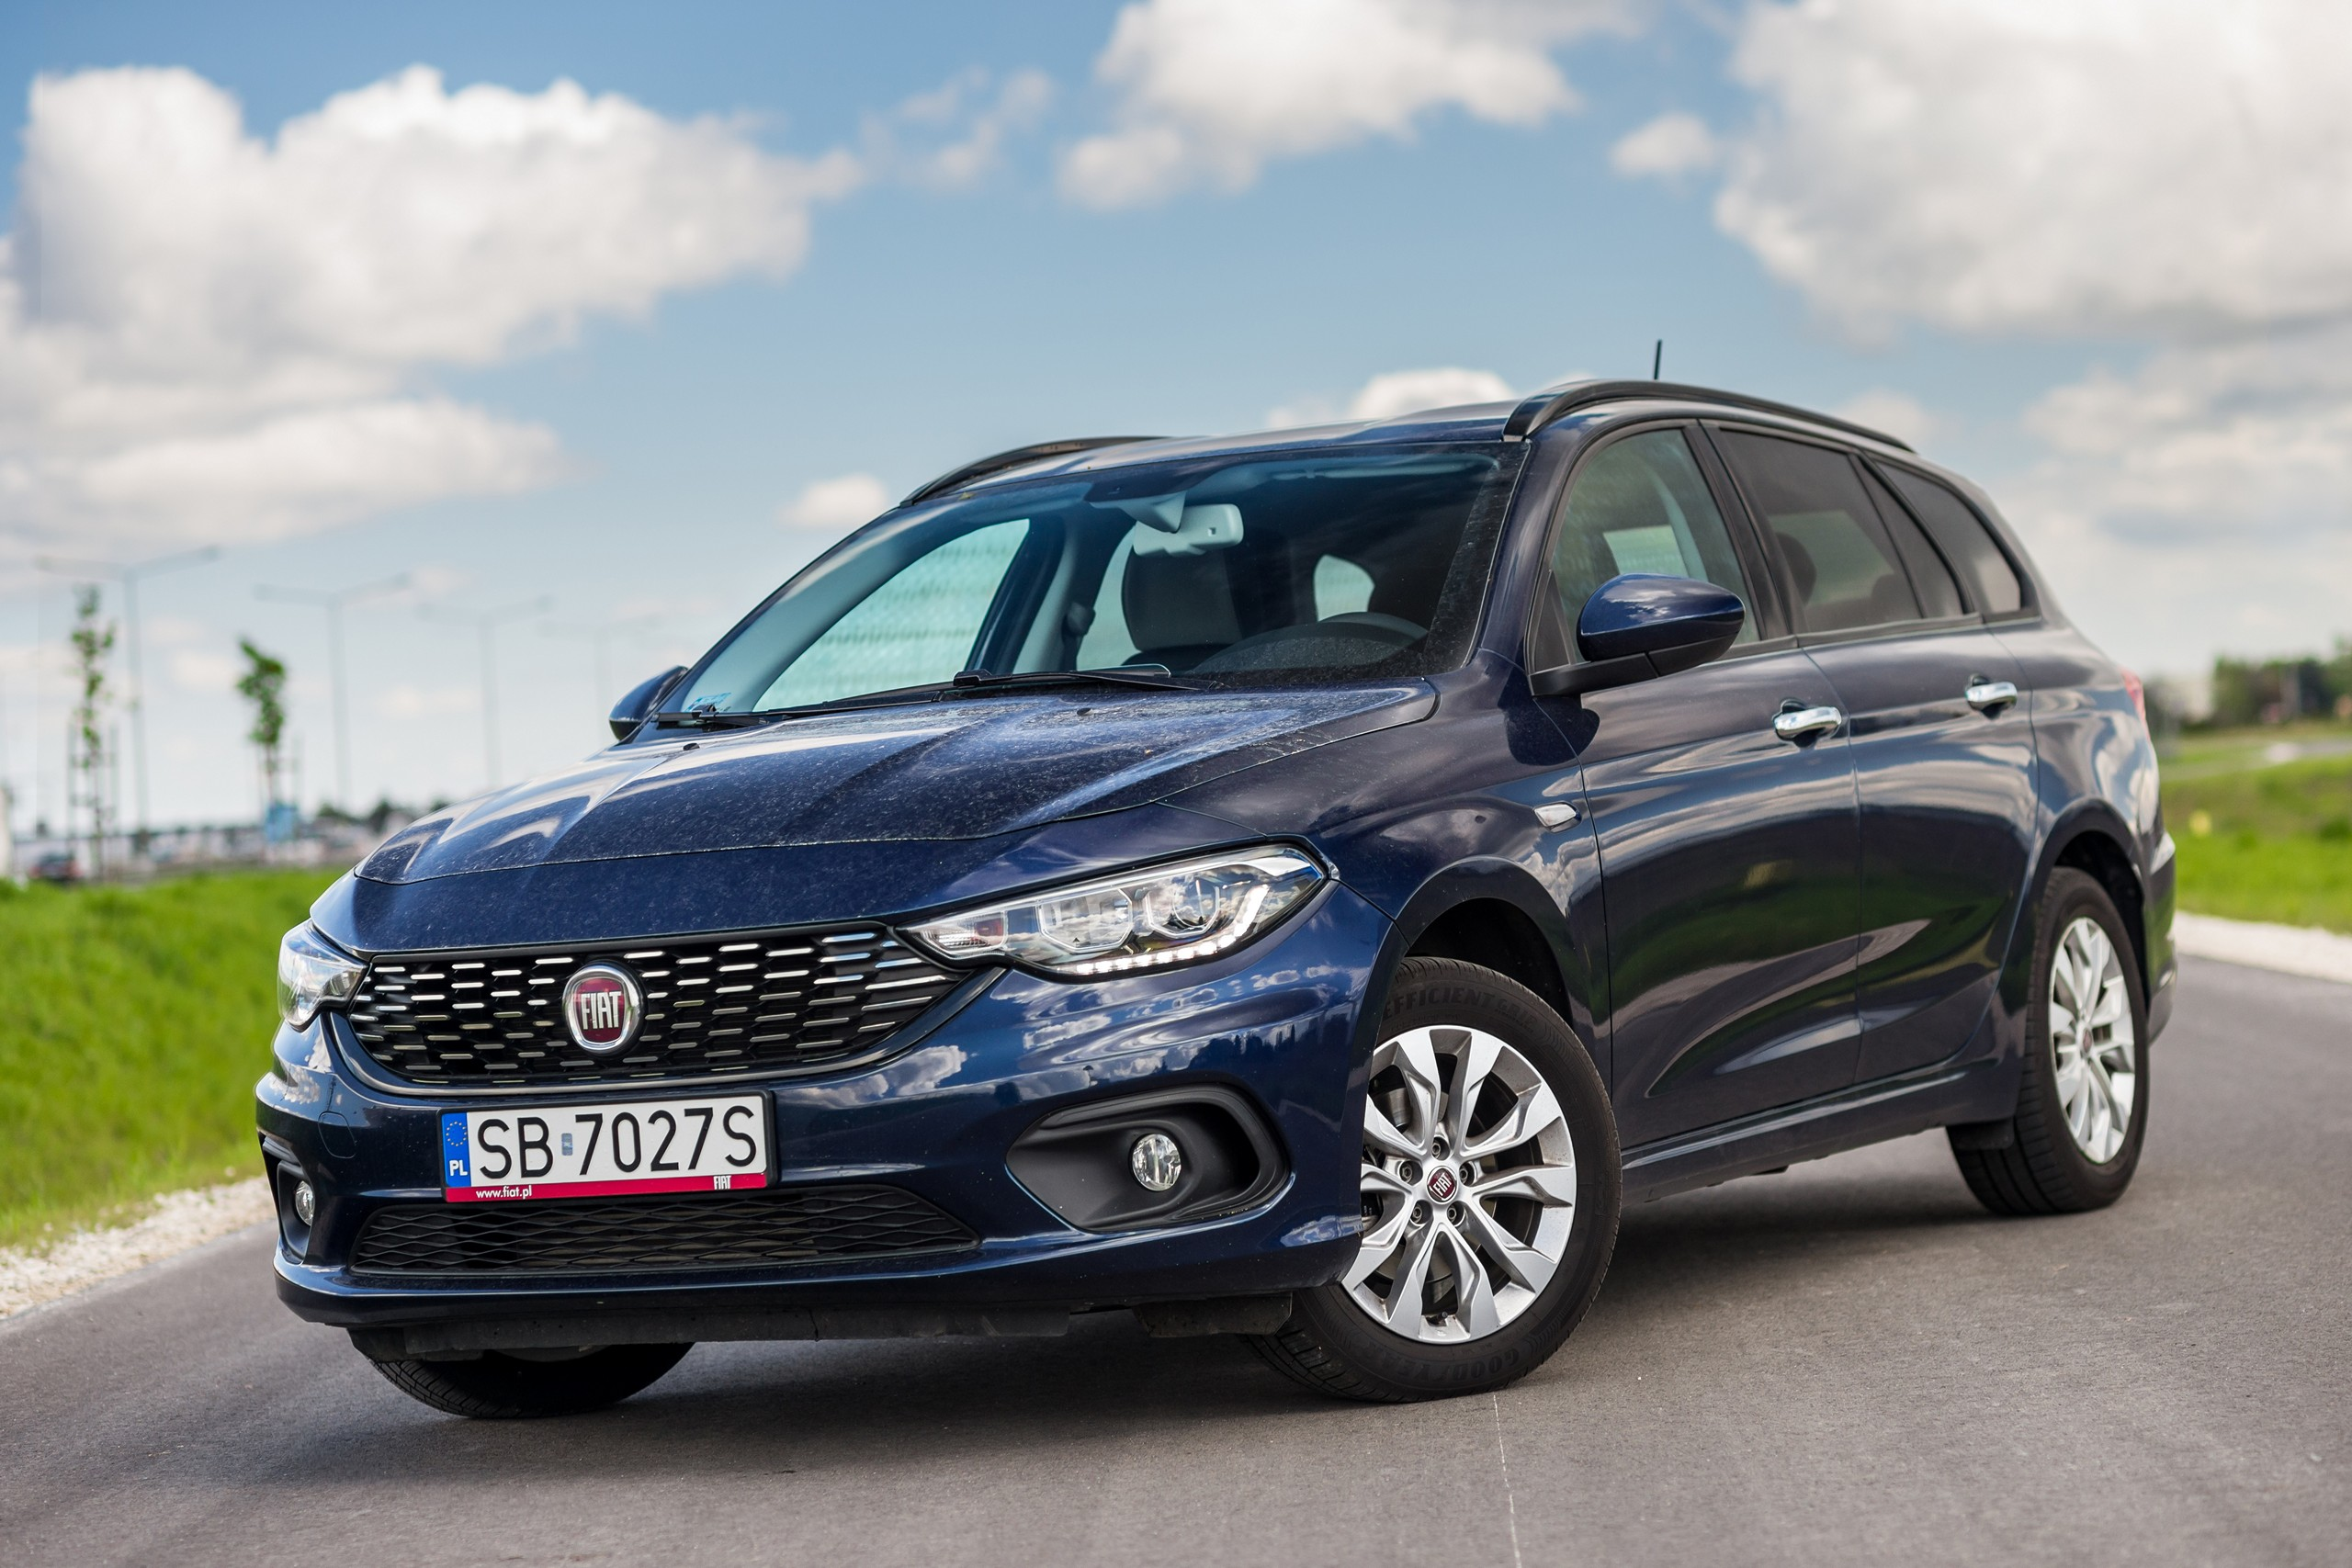 fiat tipo station wagon money talks project automotive. Black Bedroom Furniture Sets. Home Design Ideas